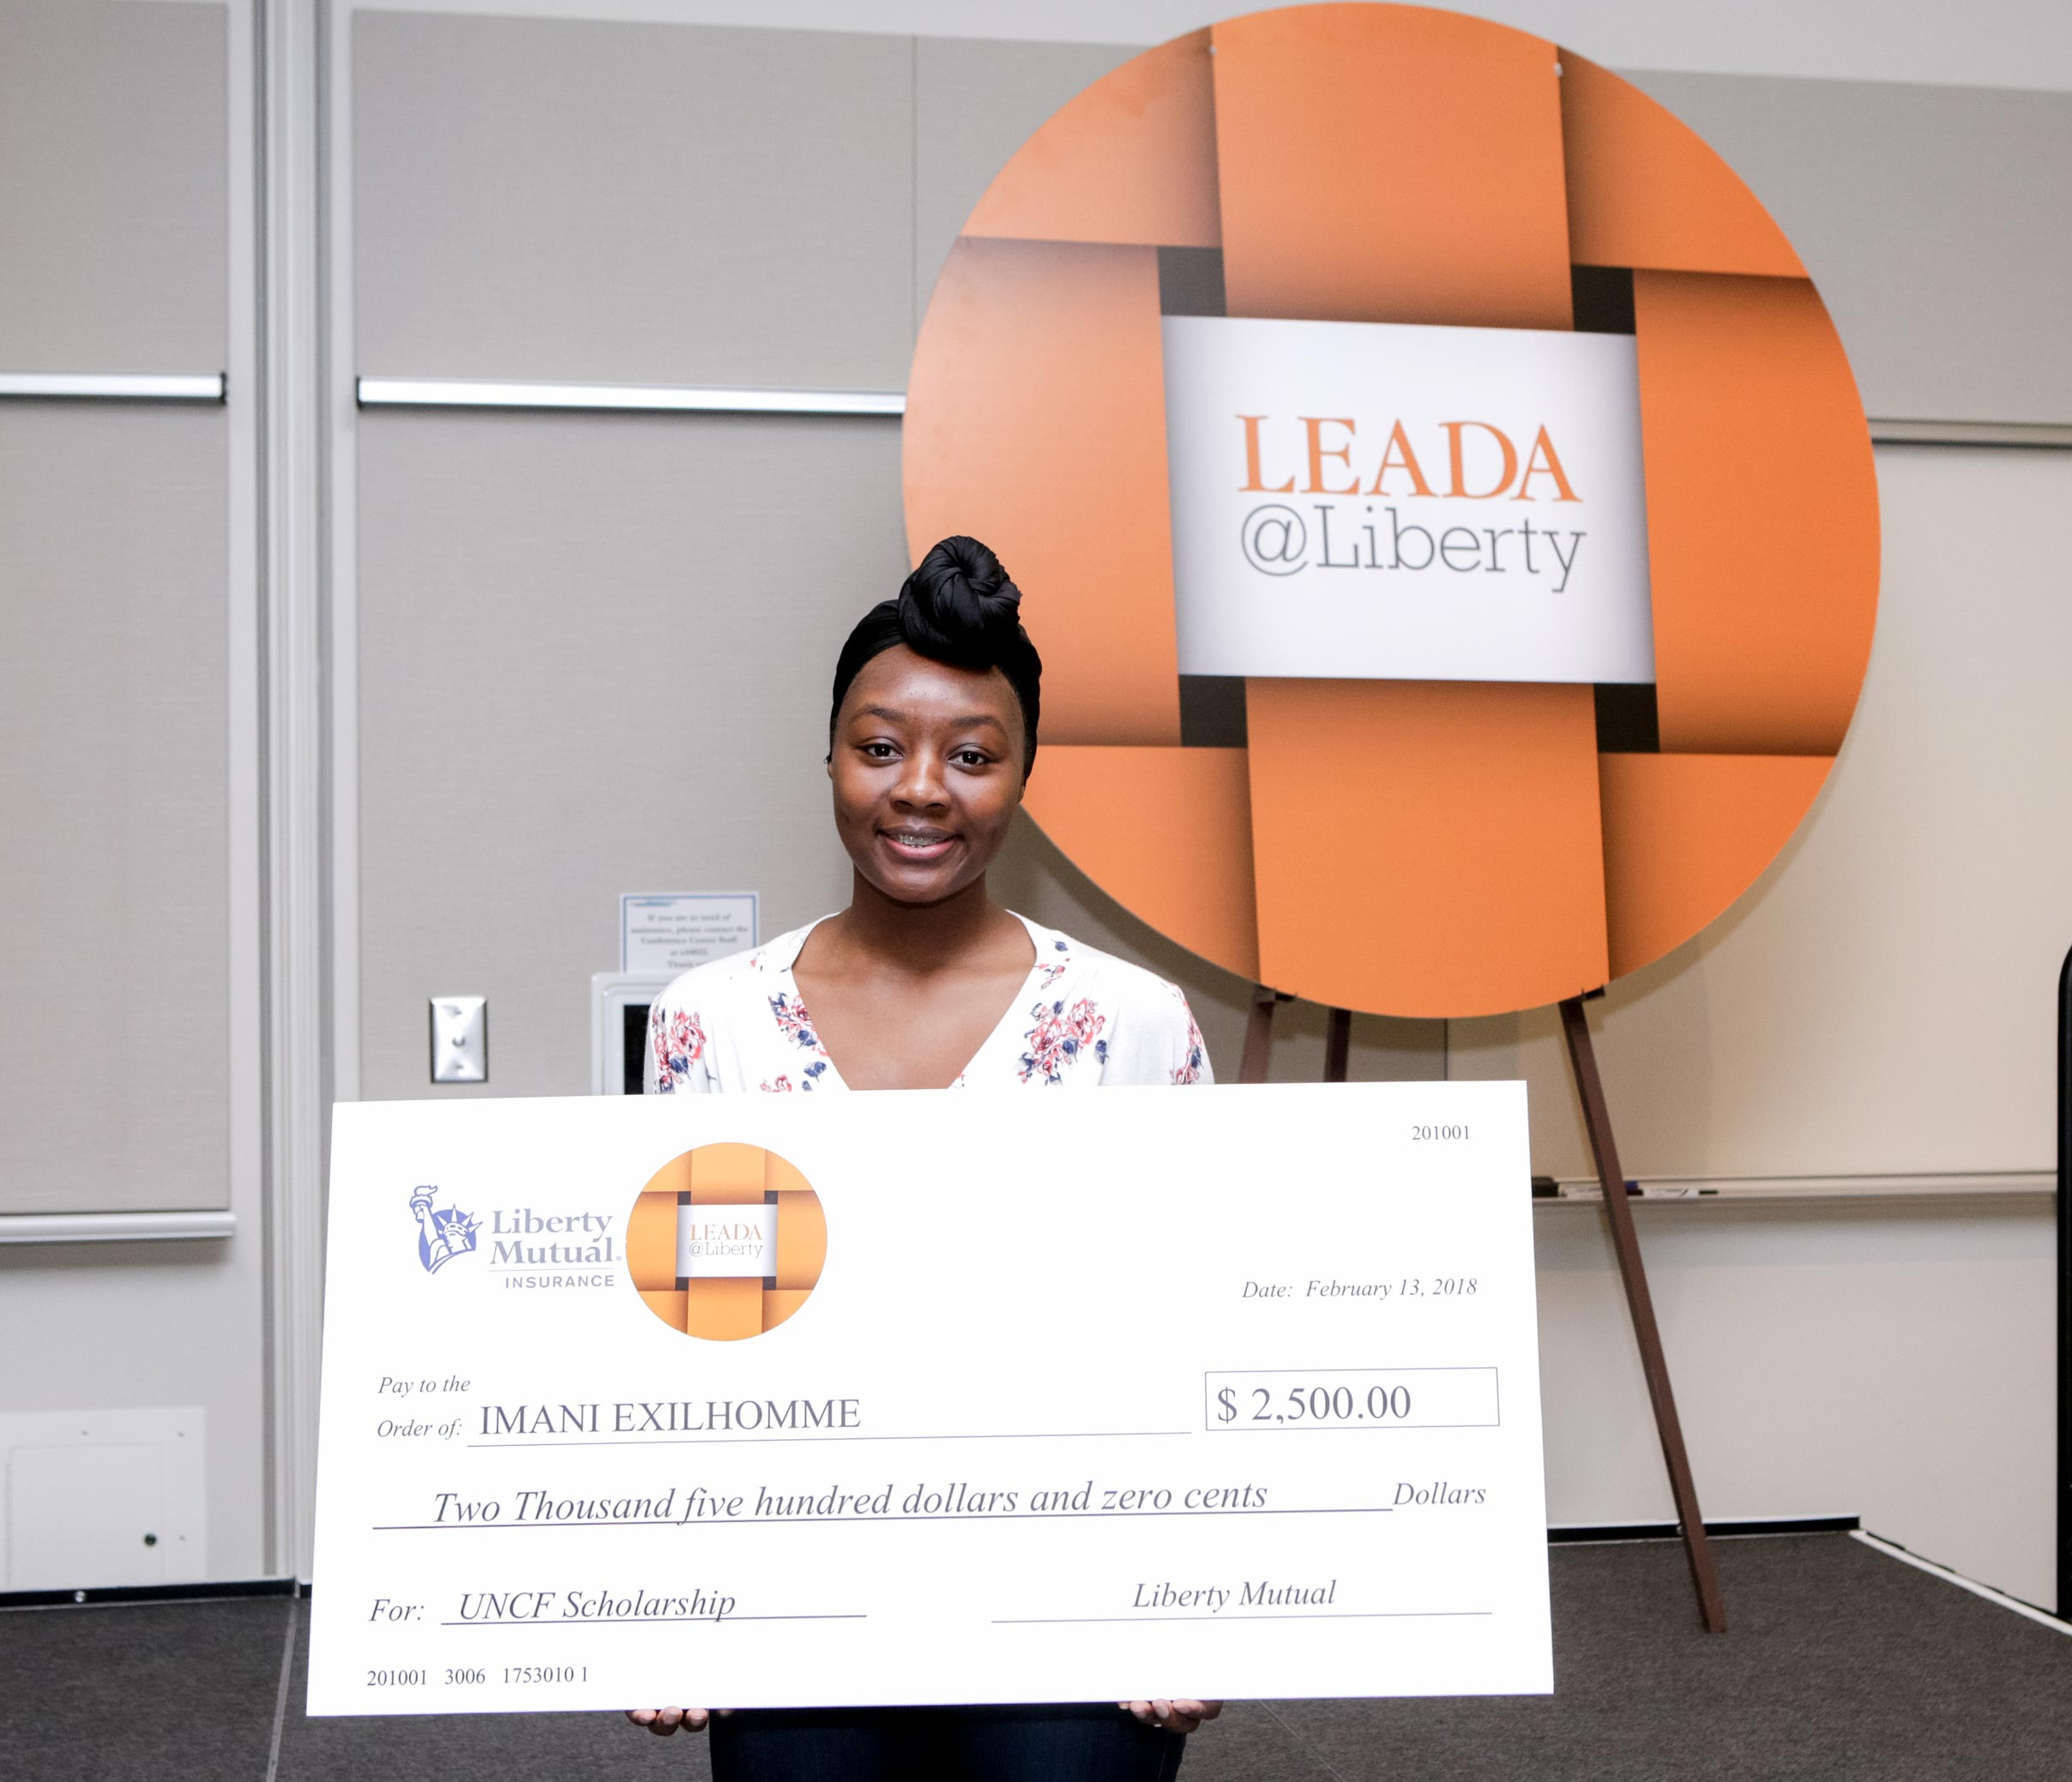 Imani Exilhomme with her liberty mutual scholarship award